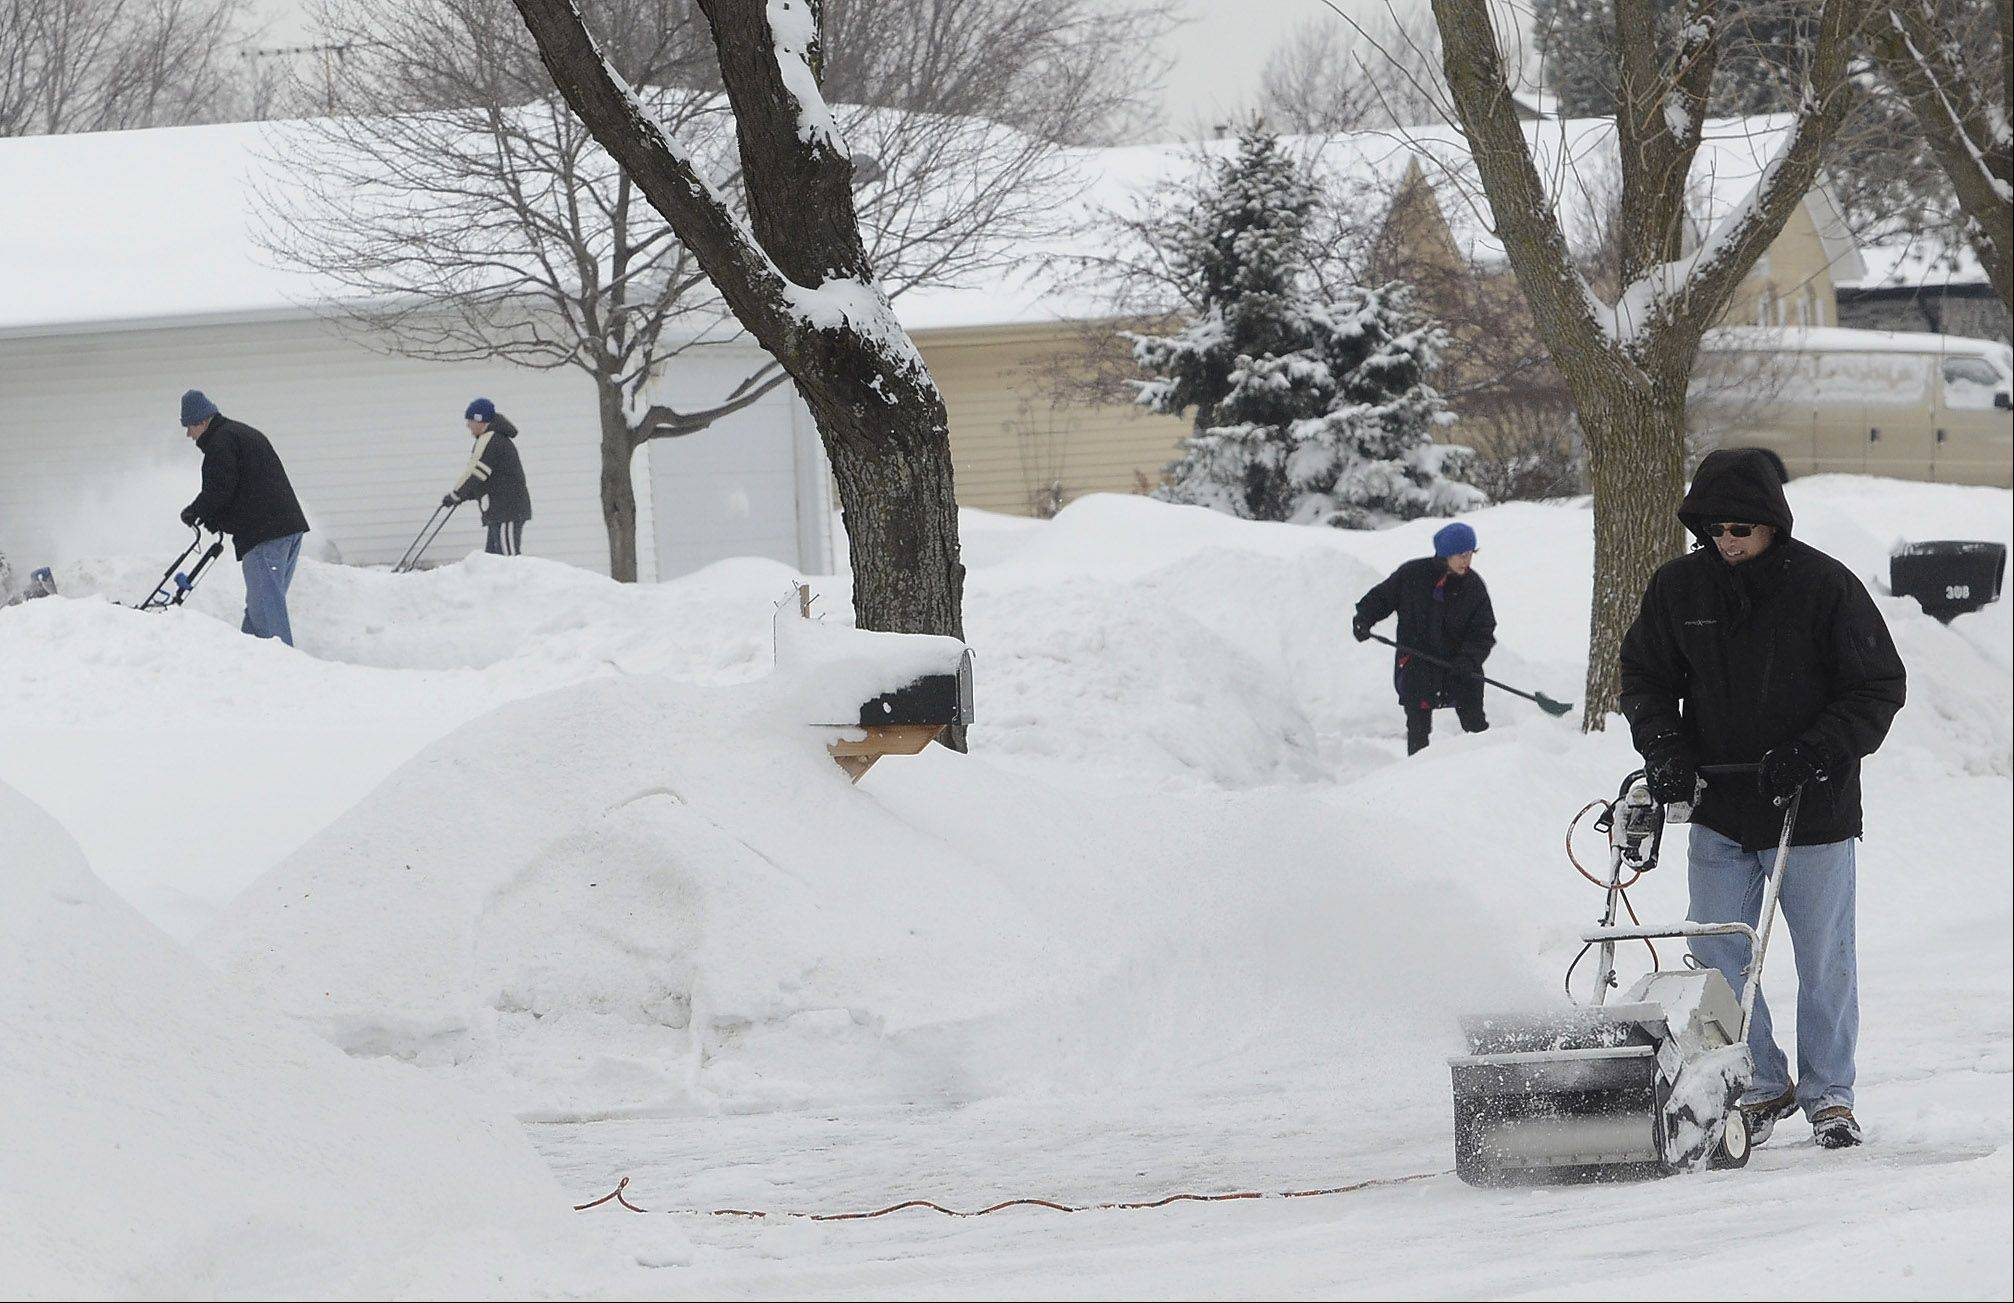 Barry Rothblum, right, joins forces with his next-door neighbors Carol and Robert Chubb on Islington Lane in Schaumburg, as they dig out Saturday morning.